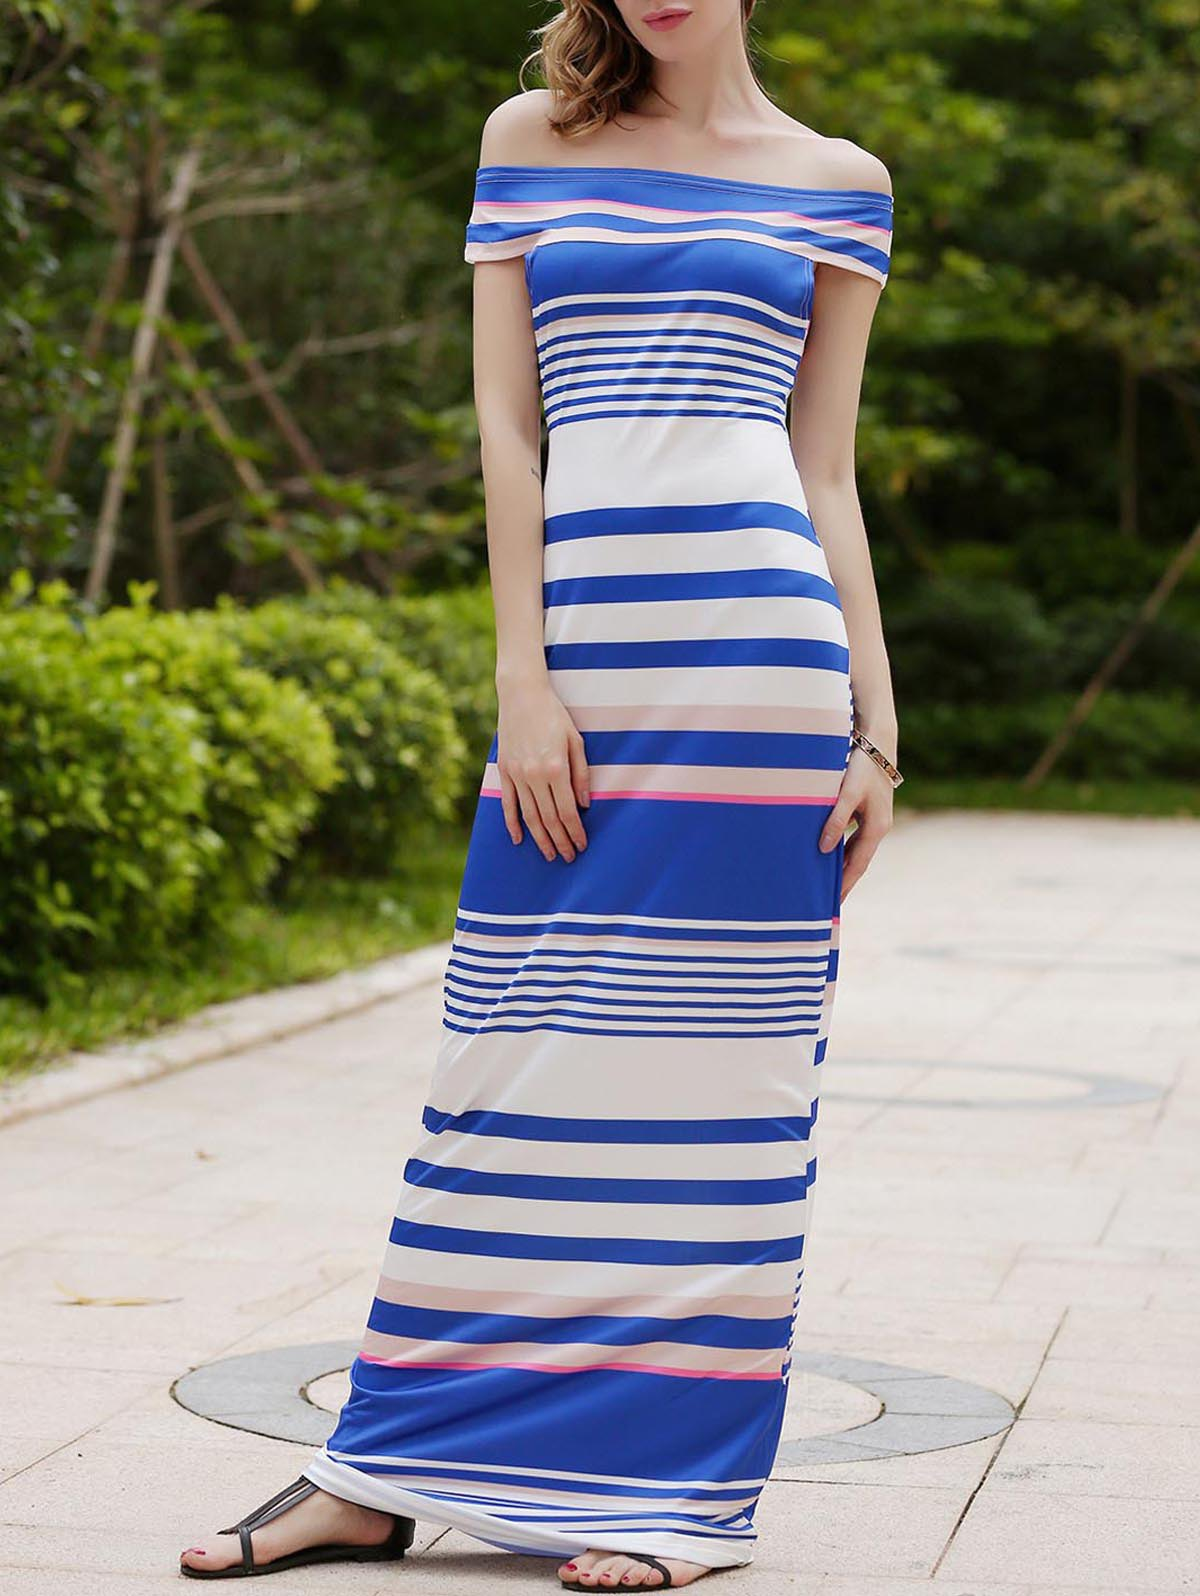 Fashionable Off The Shoulder Skinny Striped Women's Maxi Dress - SAPPHIRE BLUE L